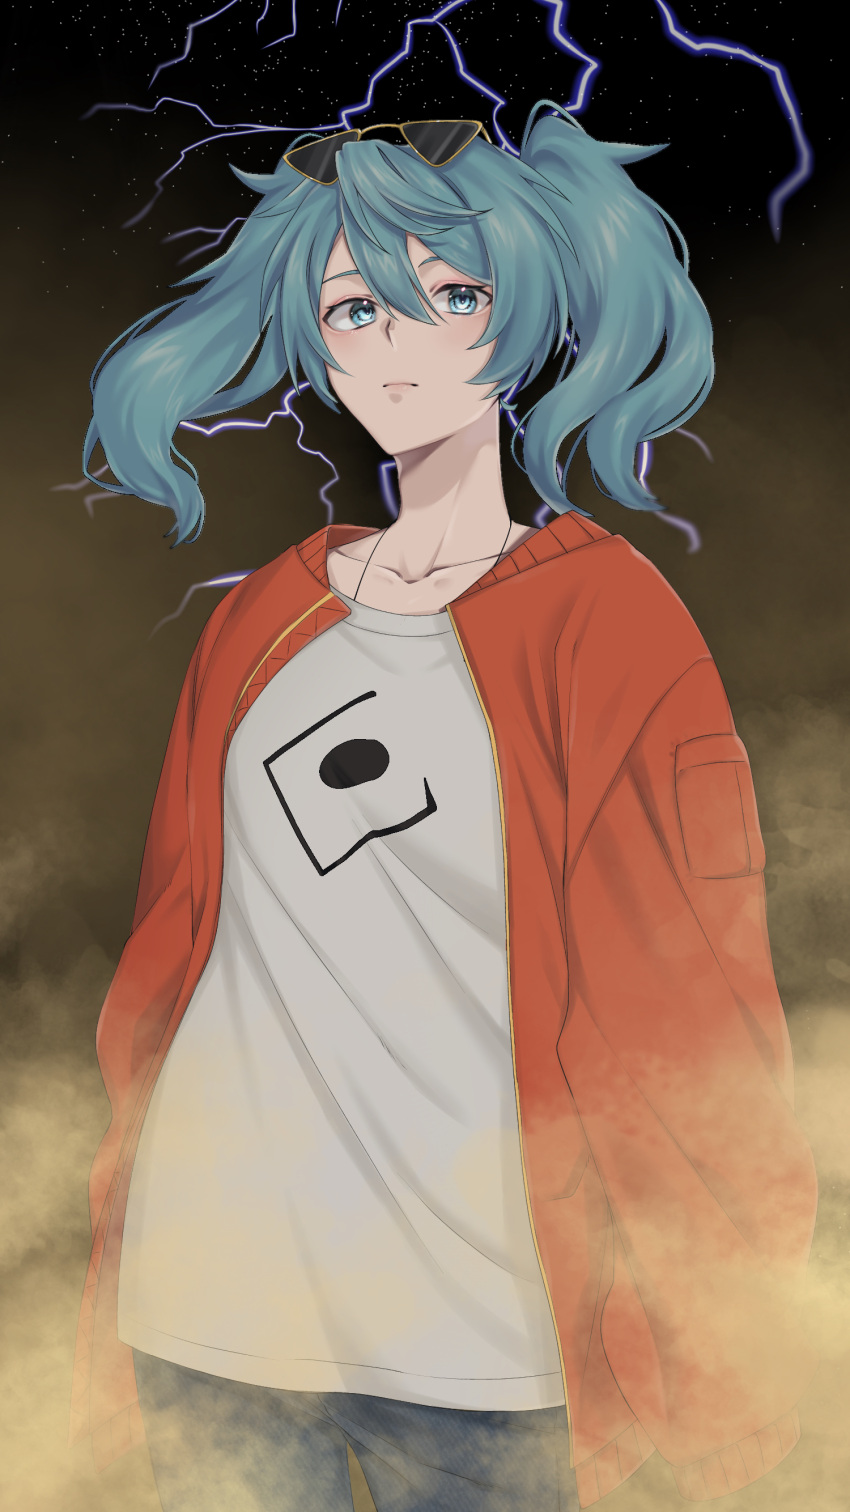 1girl absurdres aqua_eyes aqua_hair commentary cowboy_shot denim expressionless eyewear_on_head hatsune_miku highres ikura_(user_uuyj7743) jacket jeans lightning looking_at_viewer medium_hair night night_sky pants red_jacket sand sandstorm shirt sky solo spaghetti_strap standing star_(sky) starry_sky suna_no_wakusei_(vocaloid) sunglasses twintails vocaloid white_shirt